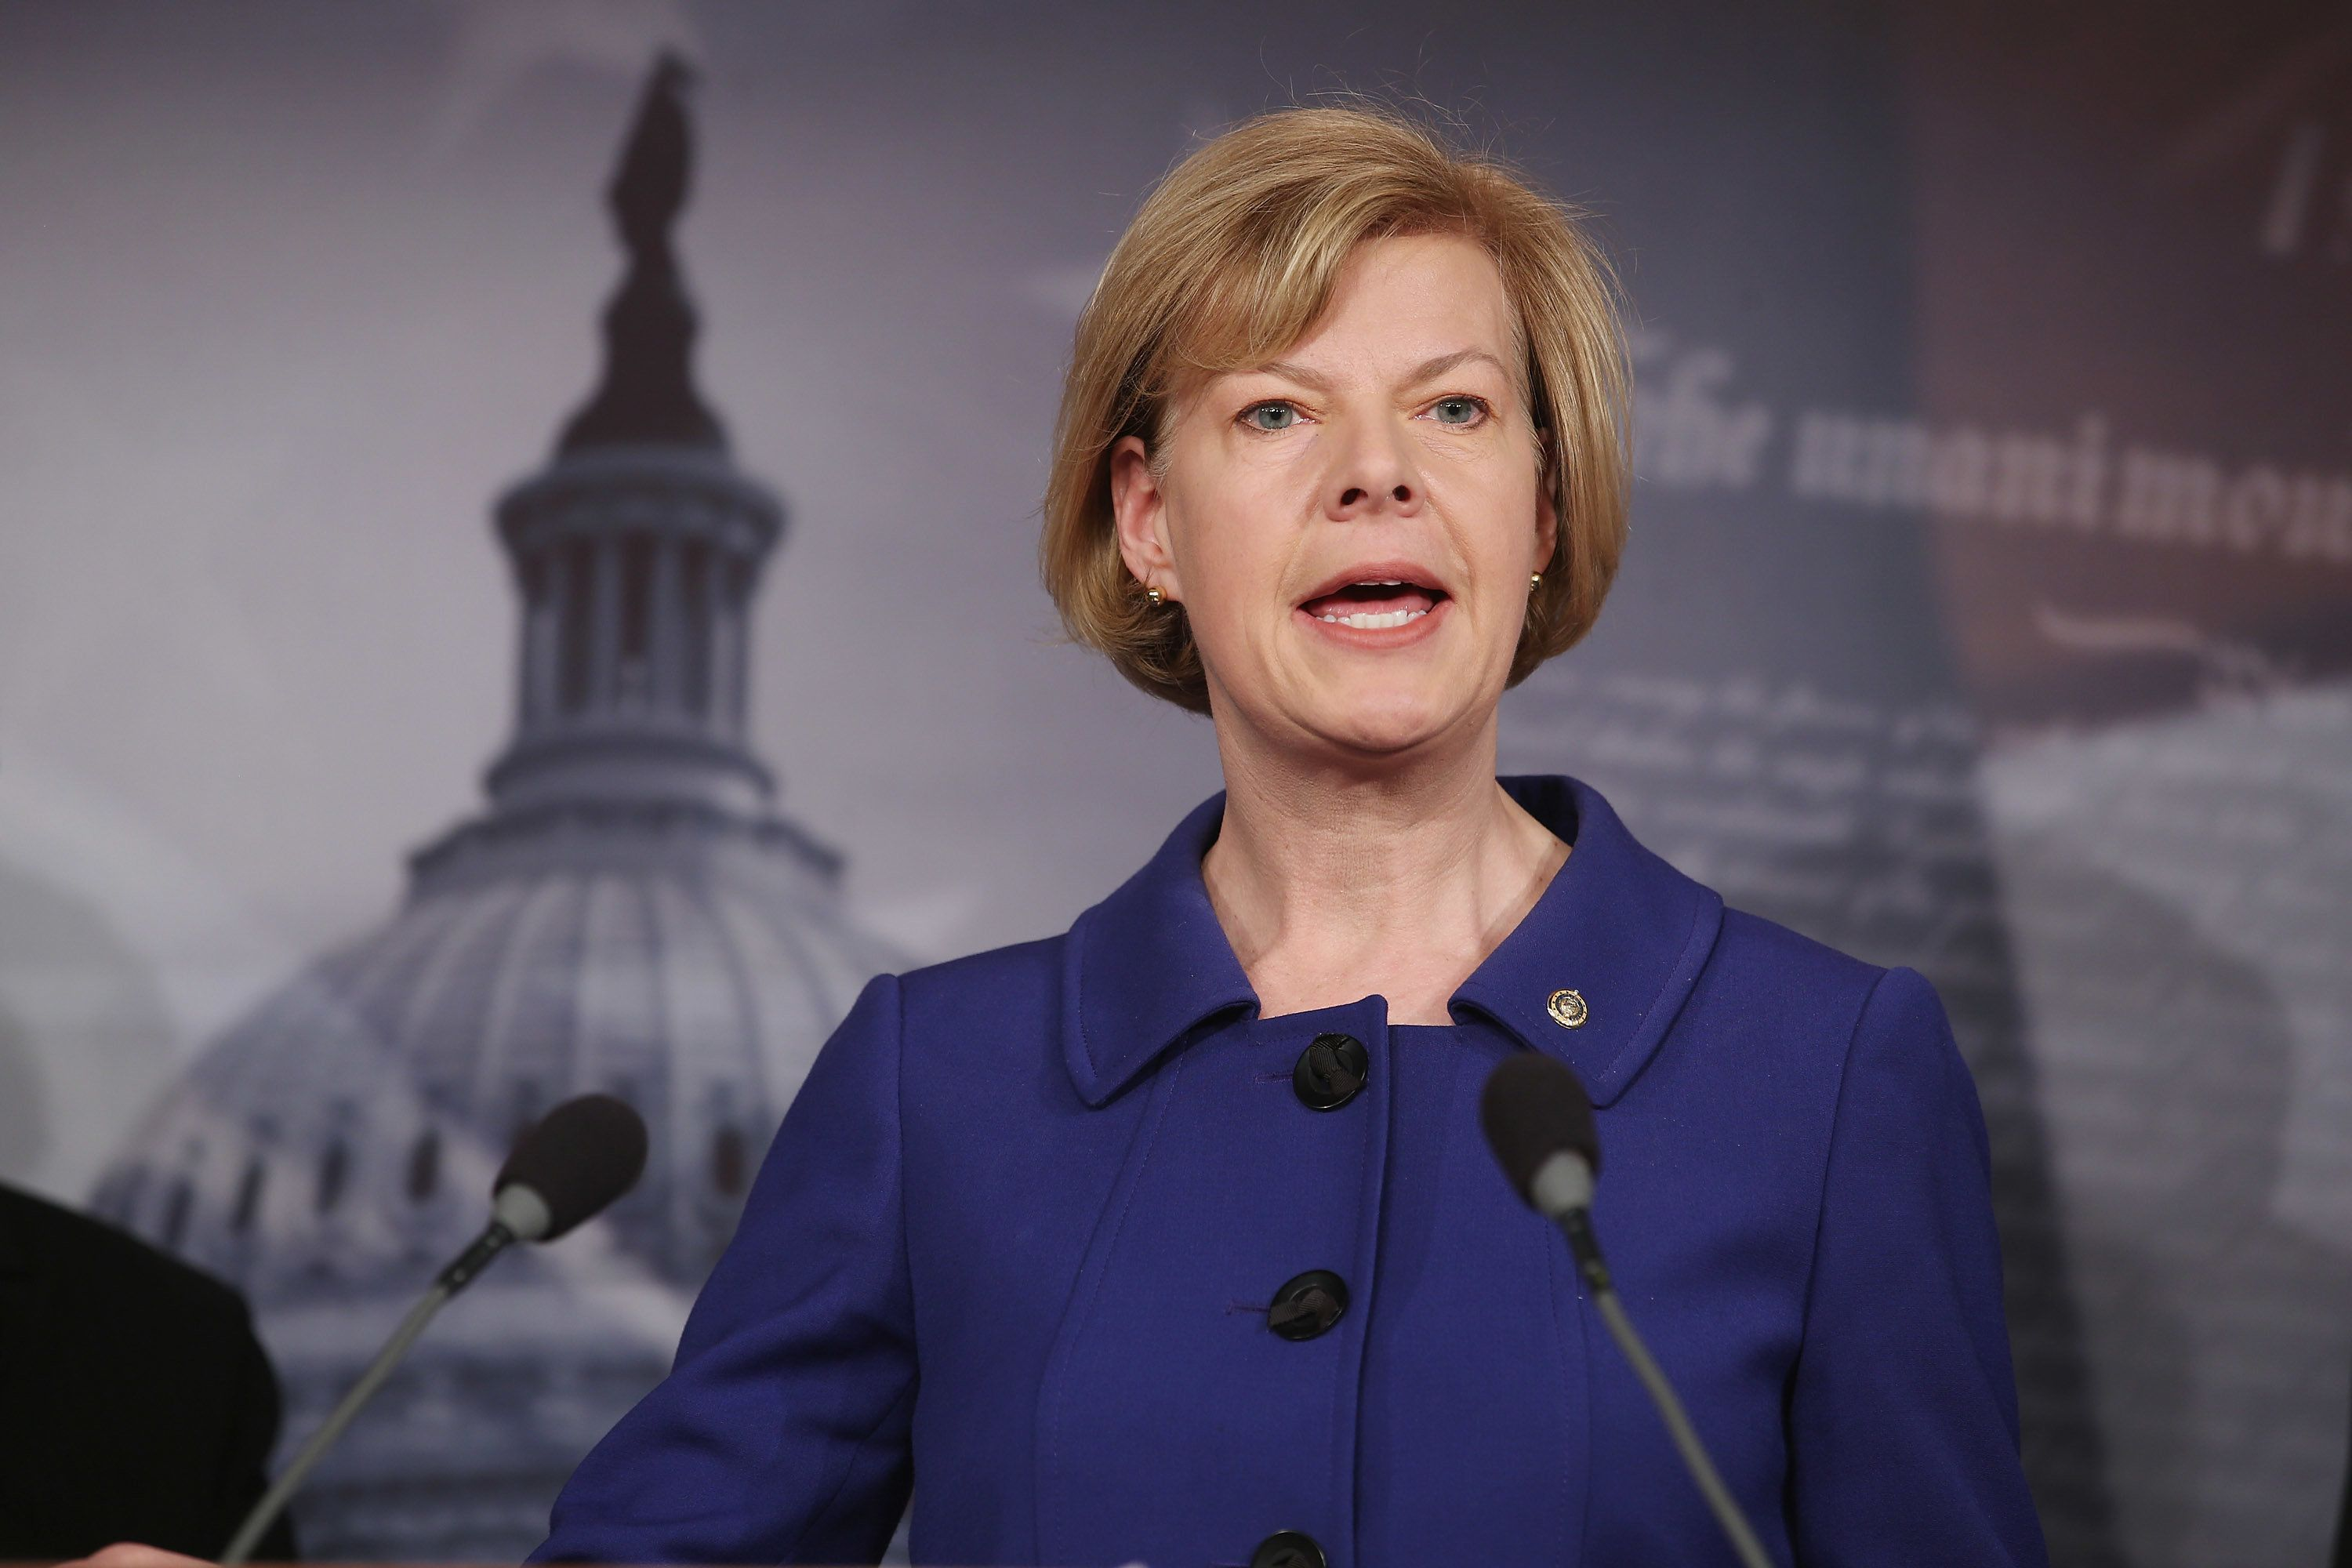 Sen. Tammy Baldwin (D-Wis.) spoke on Friday about the need to crack down on corporate short-termism.